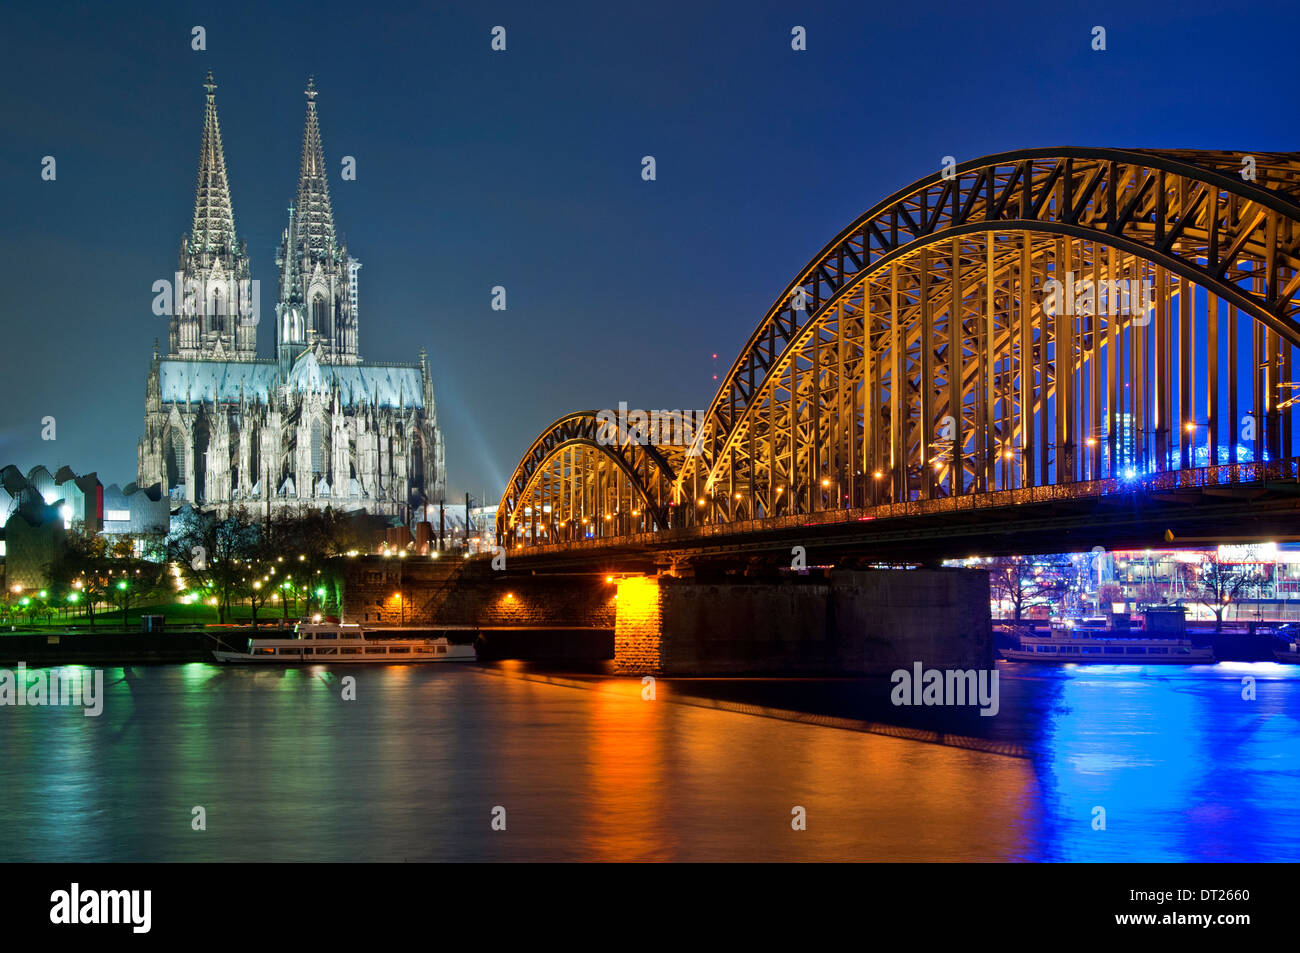 Cologne Cathedral, The Hohenzollern Bridge and River Rhine at Night, Cologne, Germany, Europe. - Stock Image